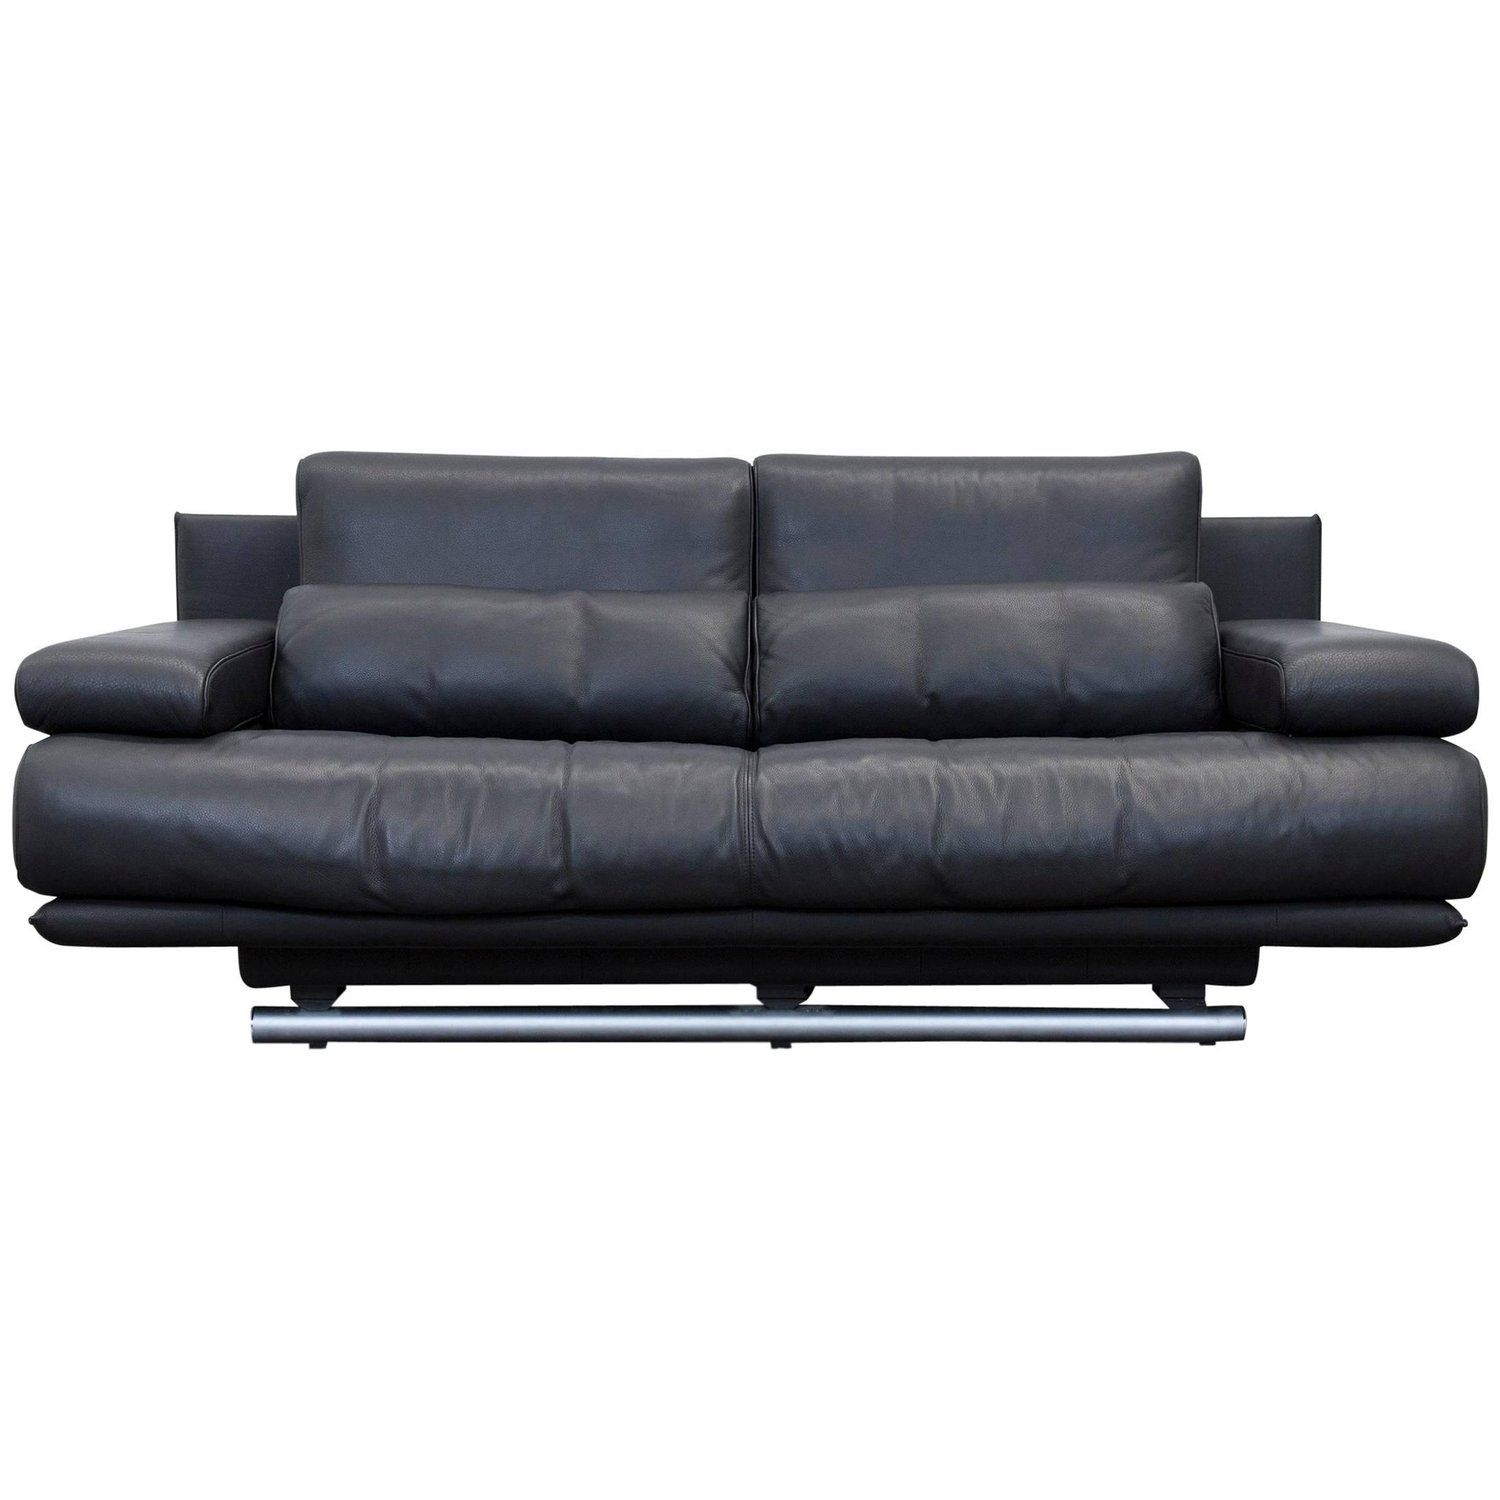 Benz Couch Rolf Benz 6500 Designer Sofa Black Three Seater Modern Variable